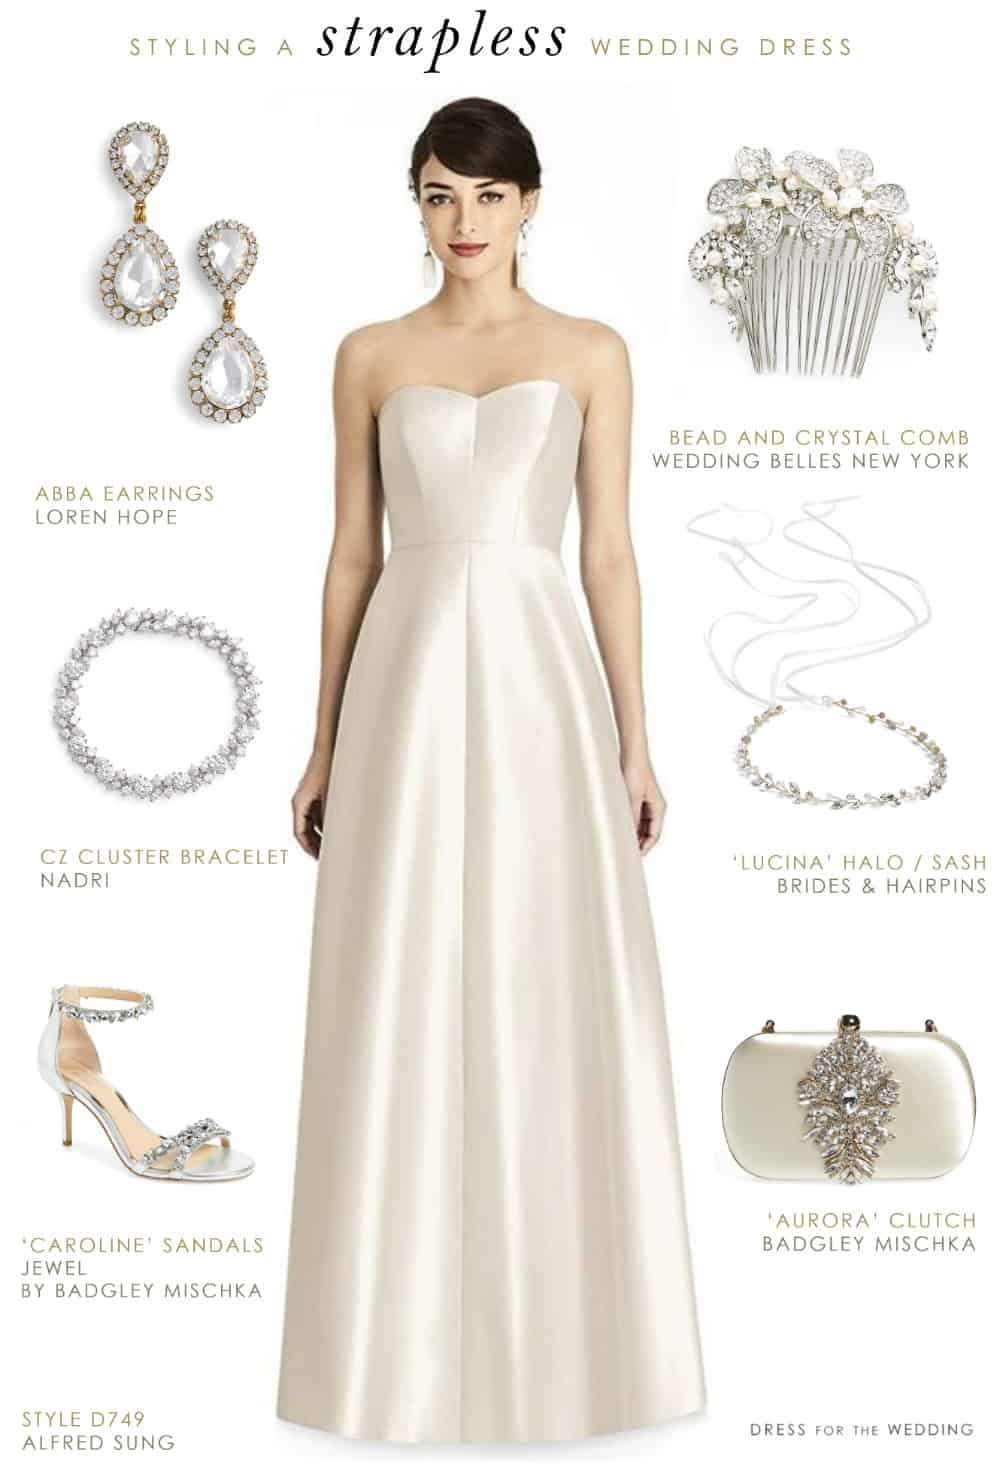 How To Accessorize A Strapless Wedding Dress Dress For The Wedding Strapless Wedding Dress Jewelry Wedding Dress Jewelry Bridesmaid Dresses Strapless